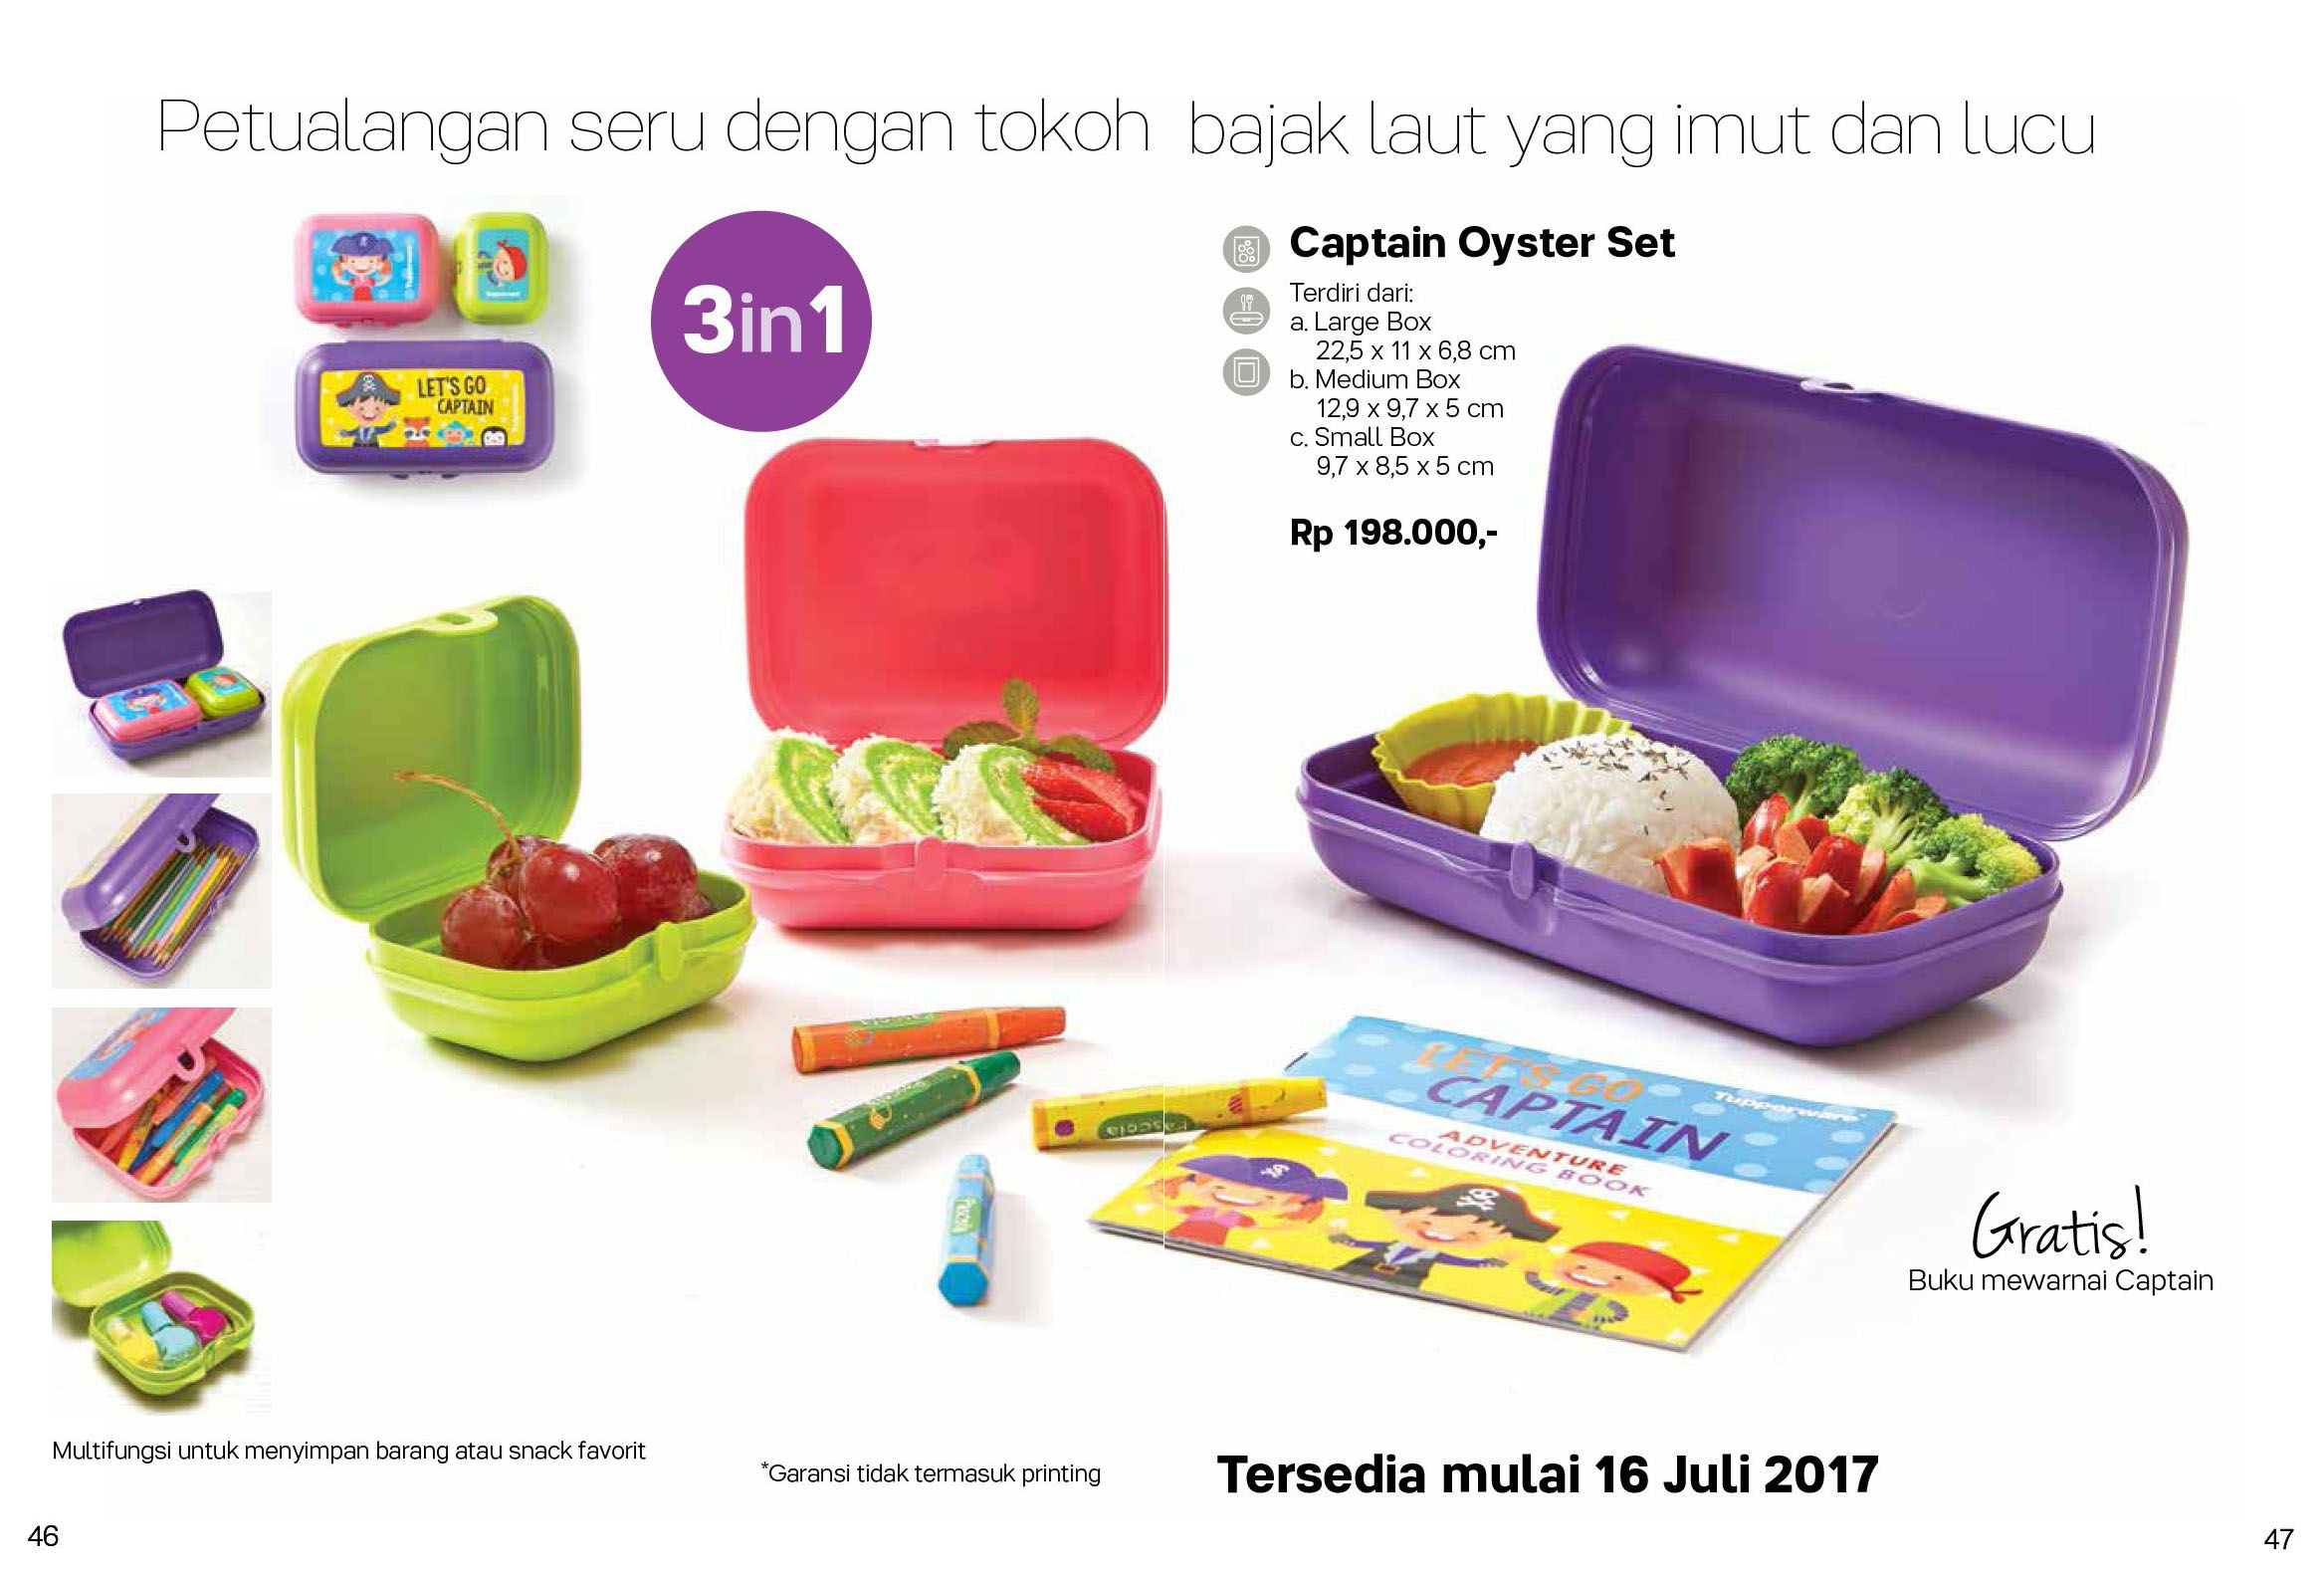 Captain Oyster Set Tupperware